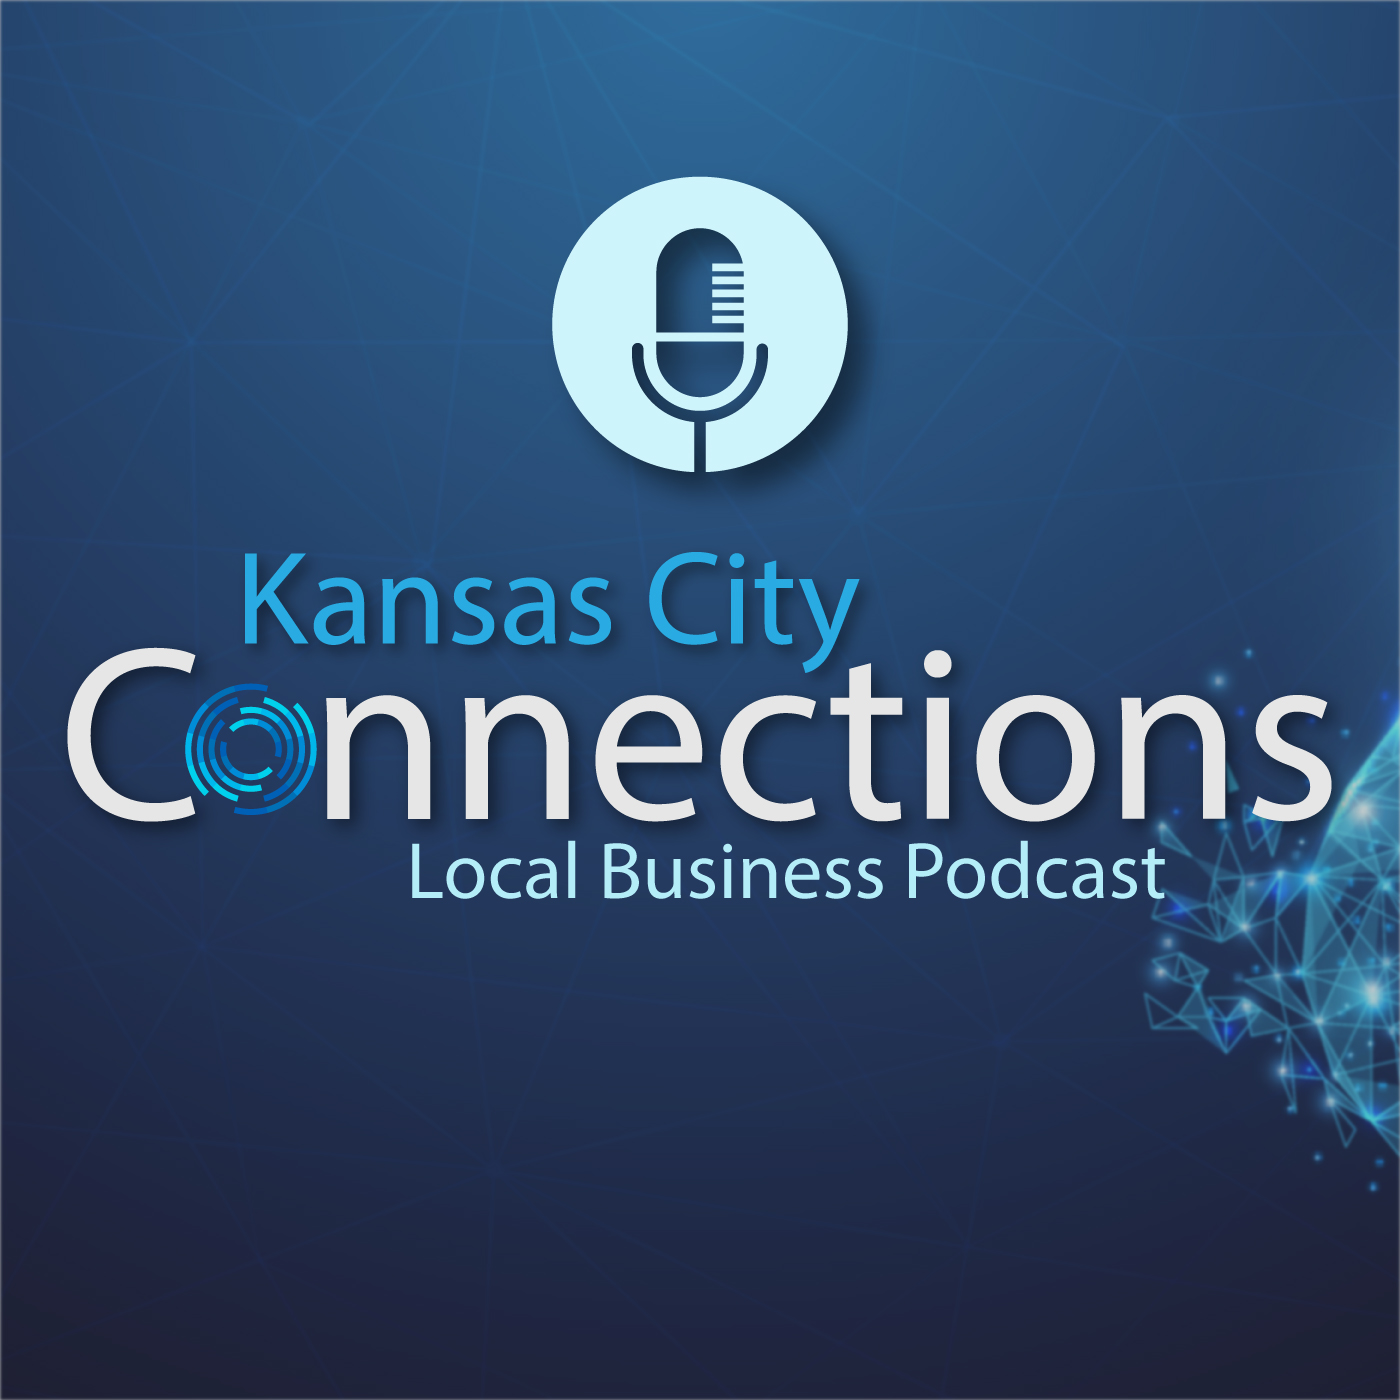 Kansas City Connections: A Local Business Podcast show art